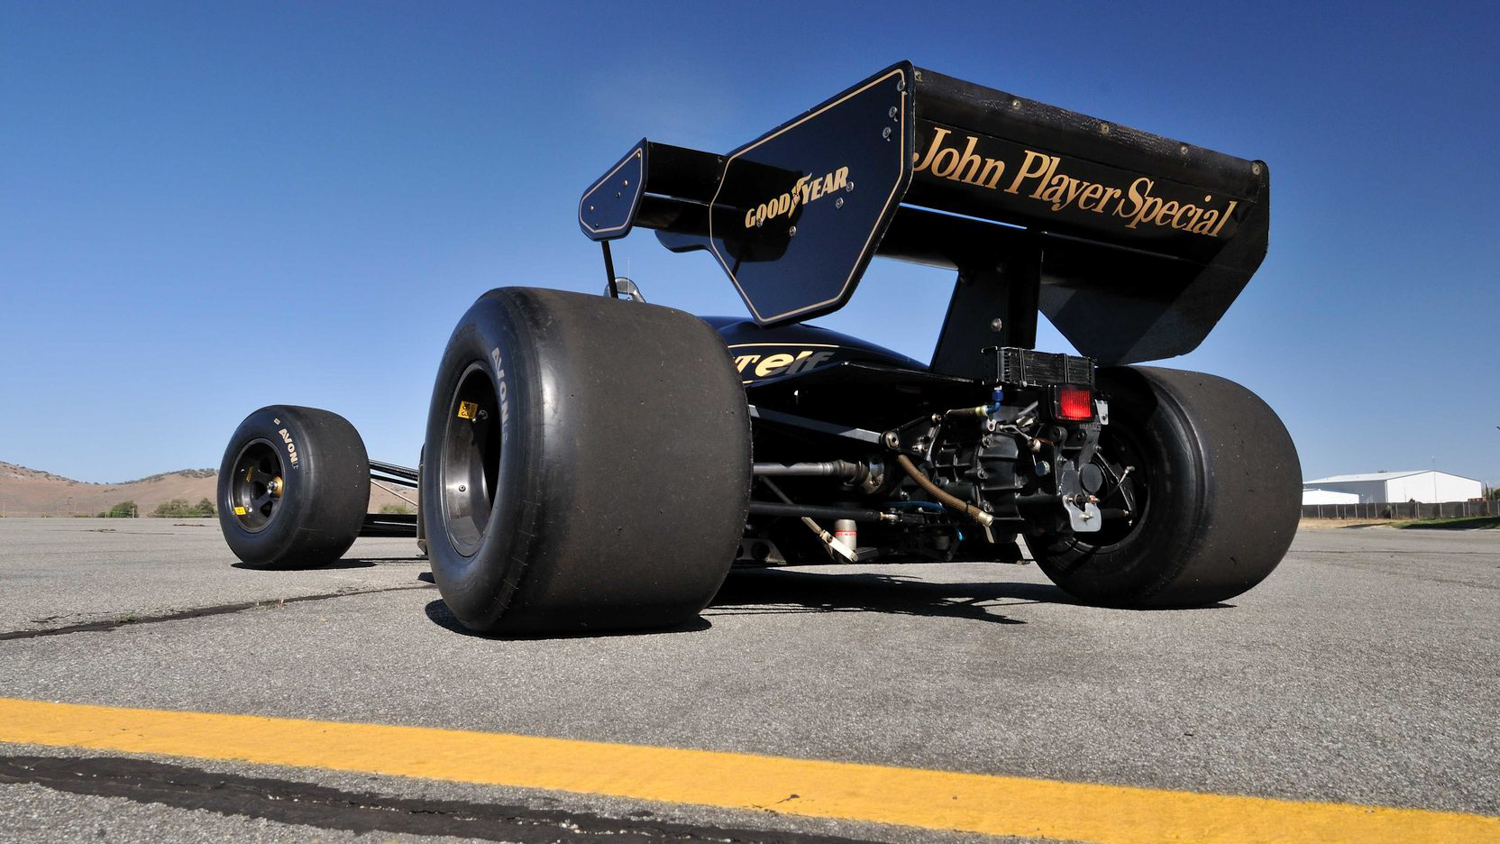 1984 Lotus Type 95T low 3/4 john player special